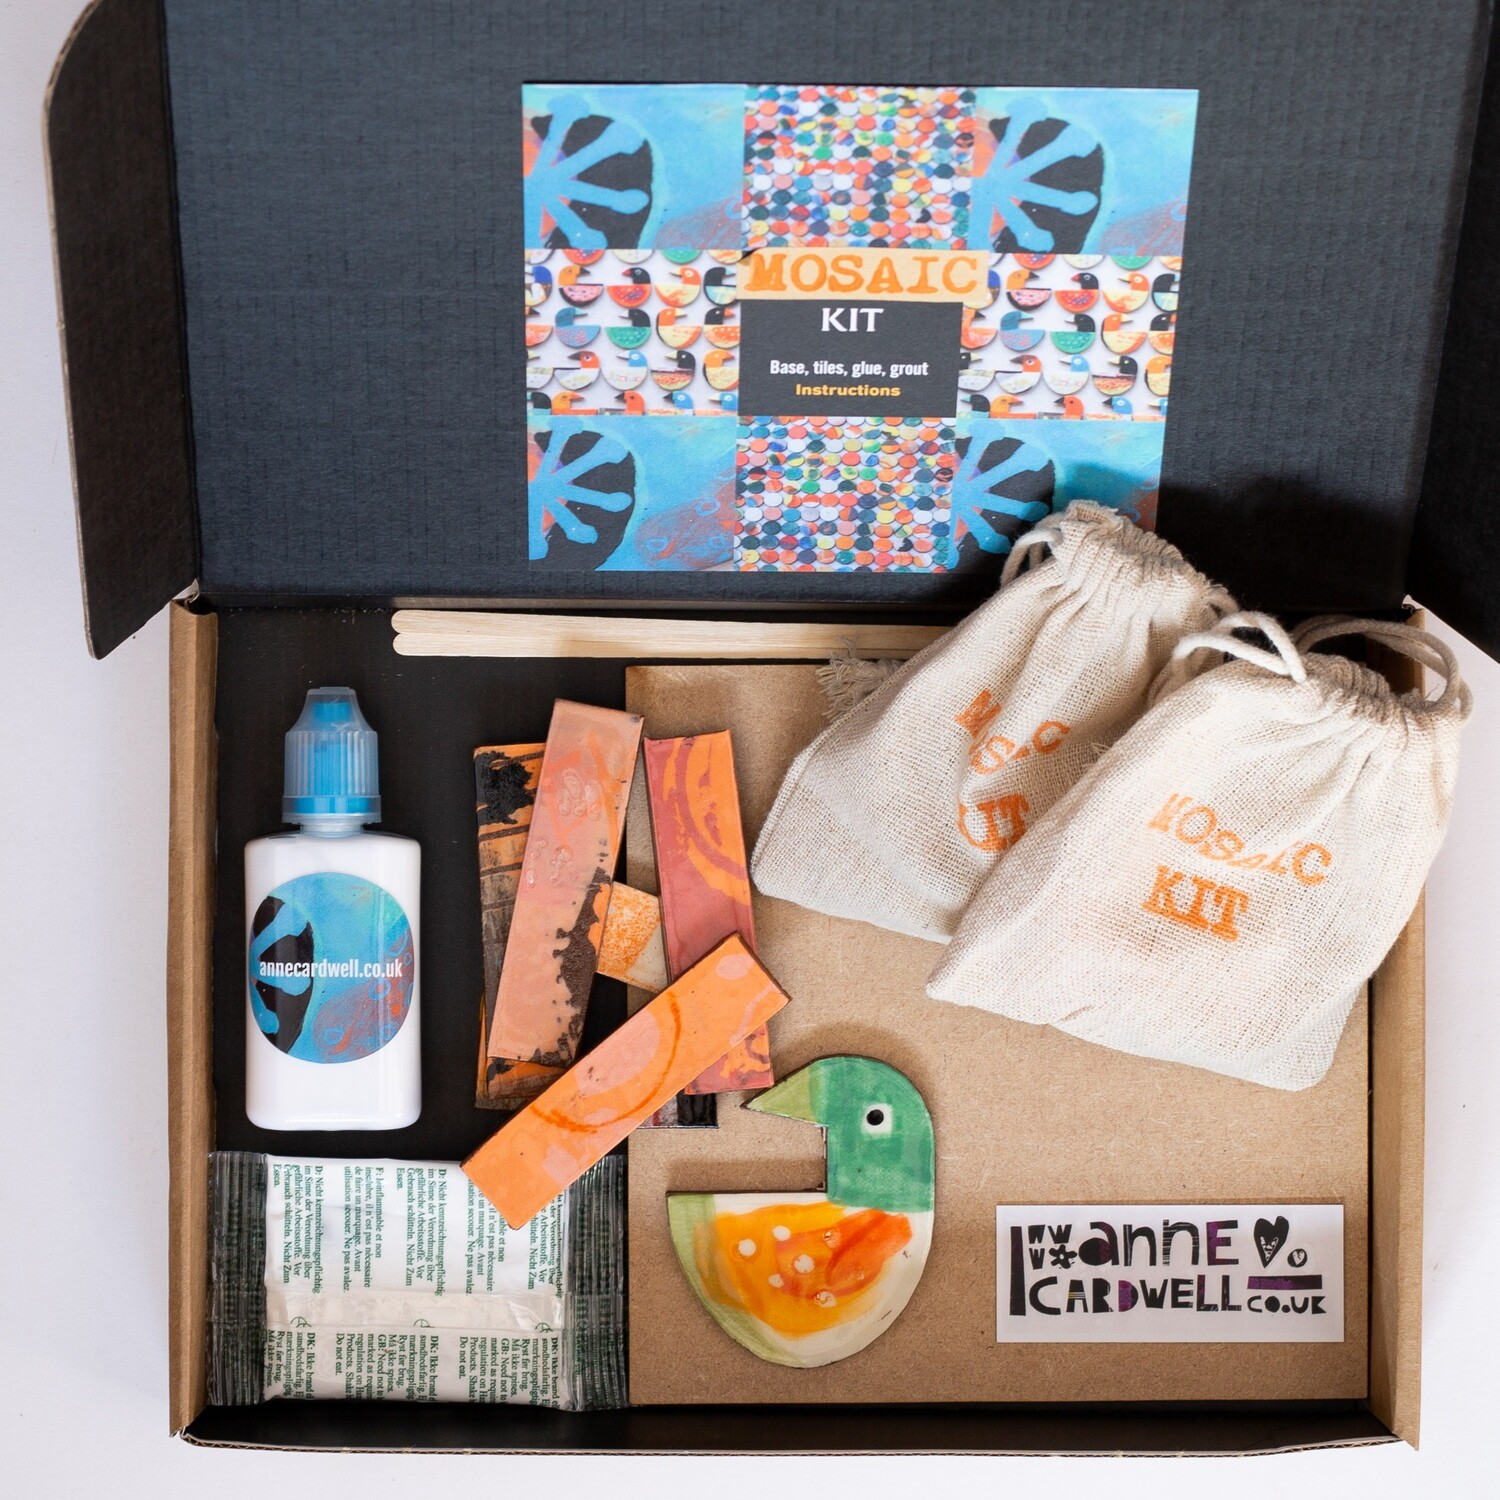 Mosaic Kit - and optional lessons